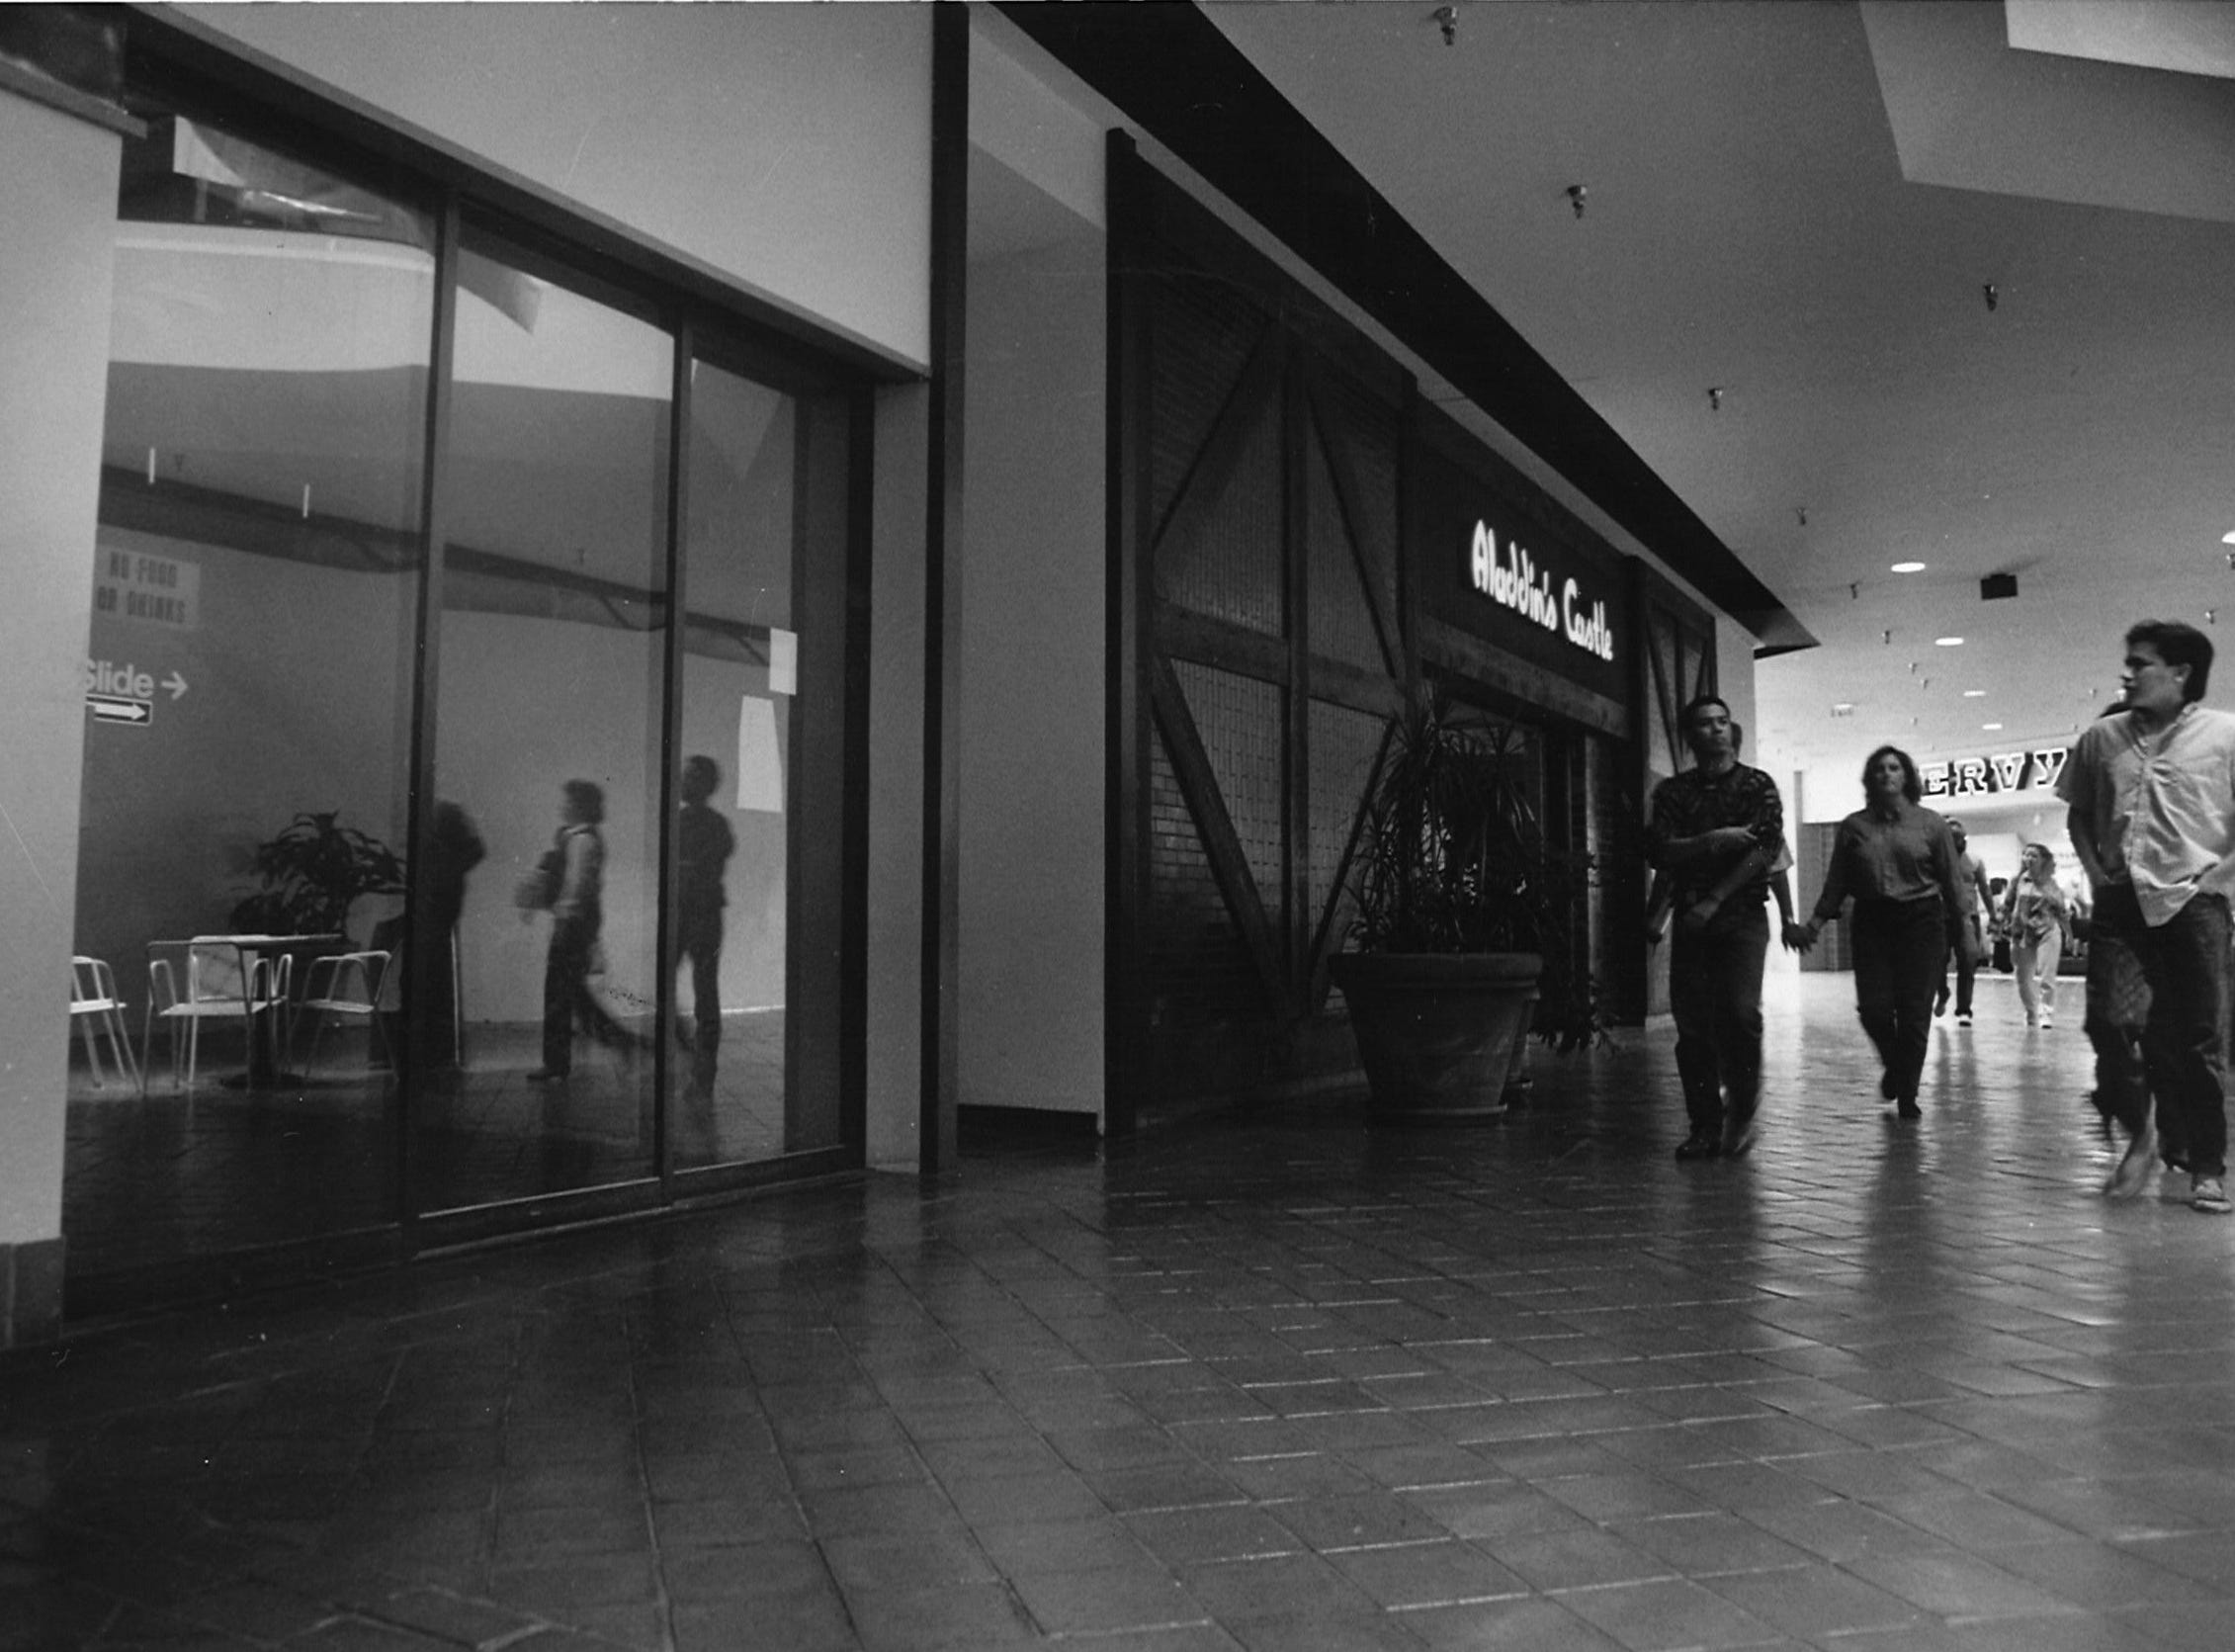 Shoppers at Sunrise Mall walk past the future location of a Corpus Christi Police substation in between Aladdin's Castle and Zales Jewlers on Dec. 27, 1988.